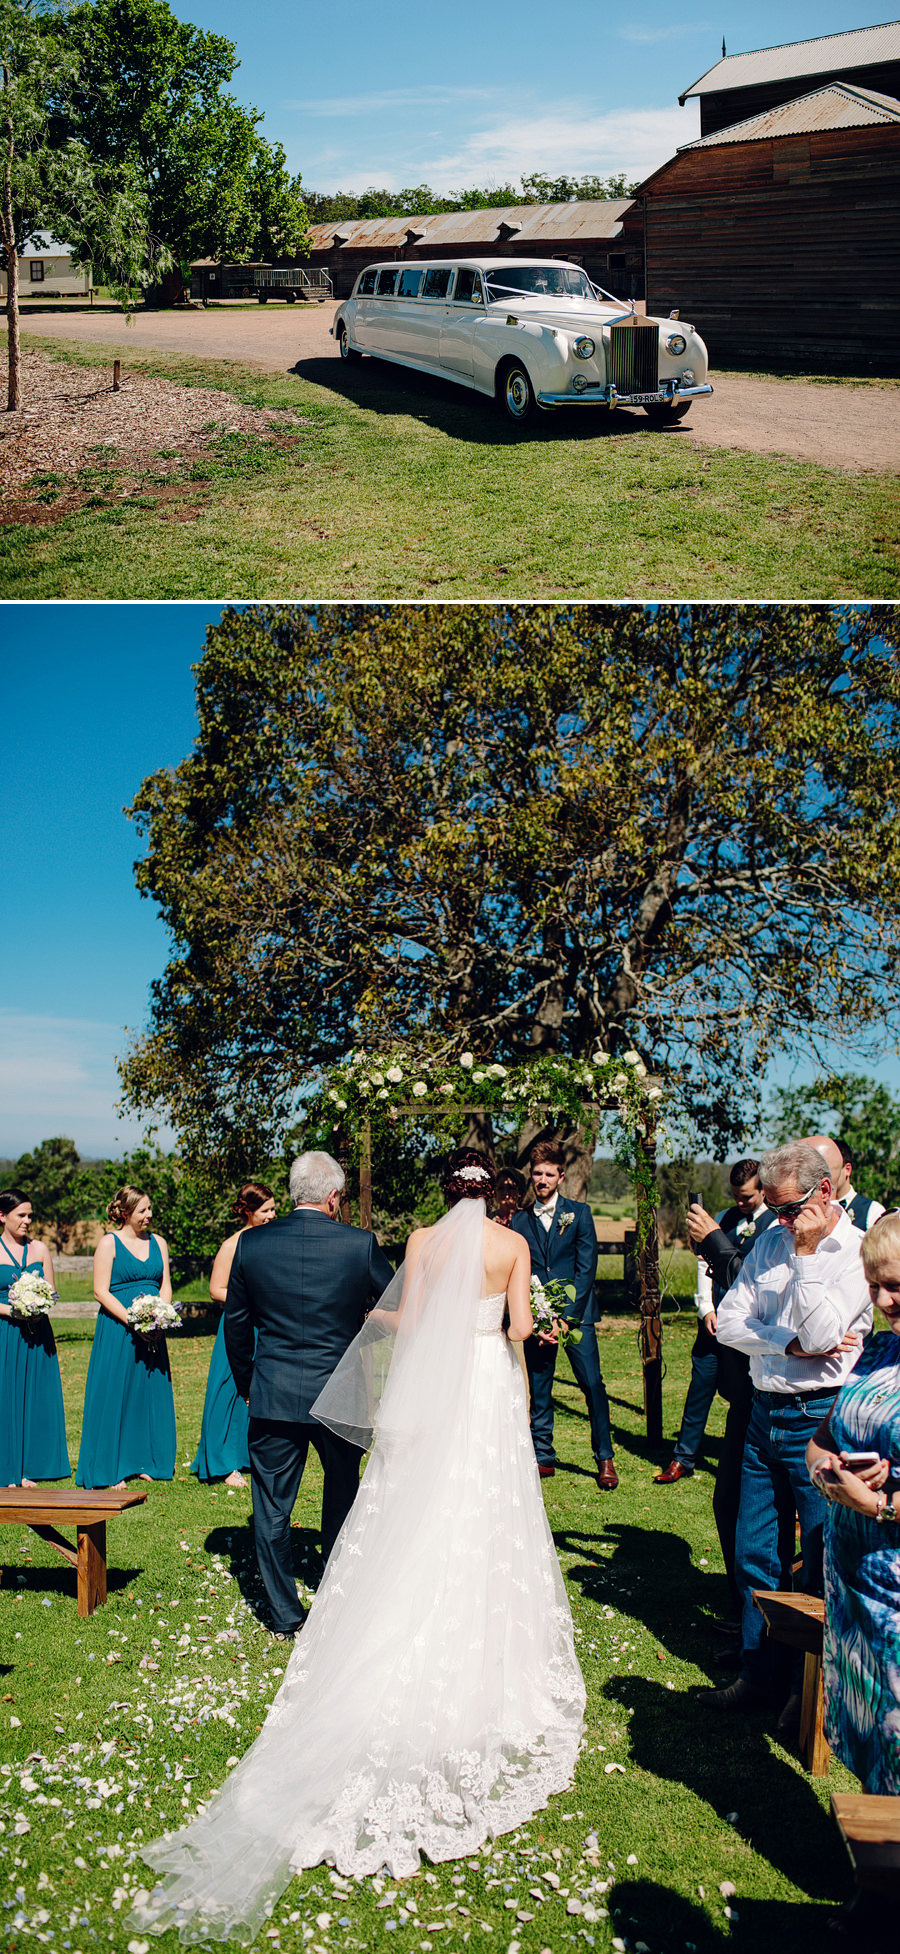 Documentary Wedding Photographer: Ceremony